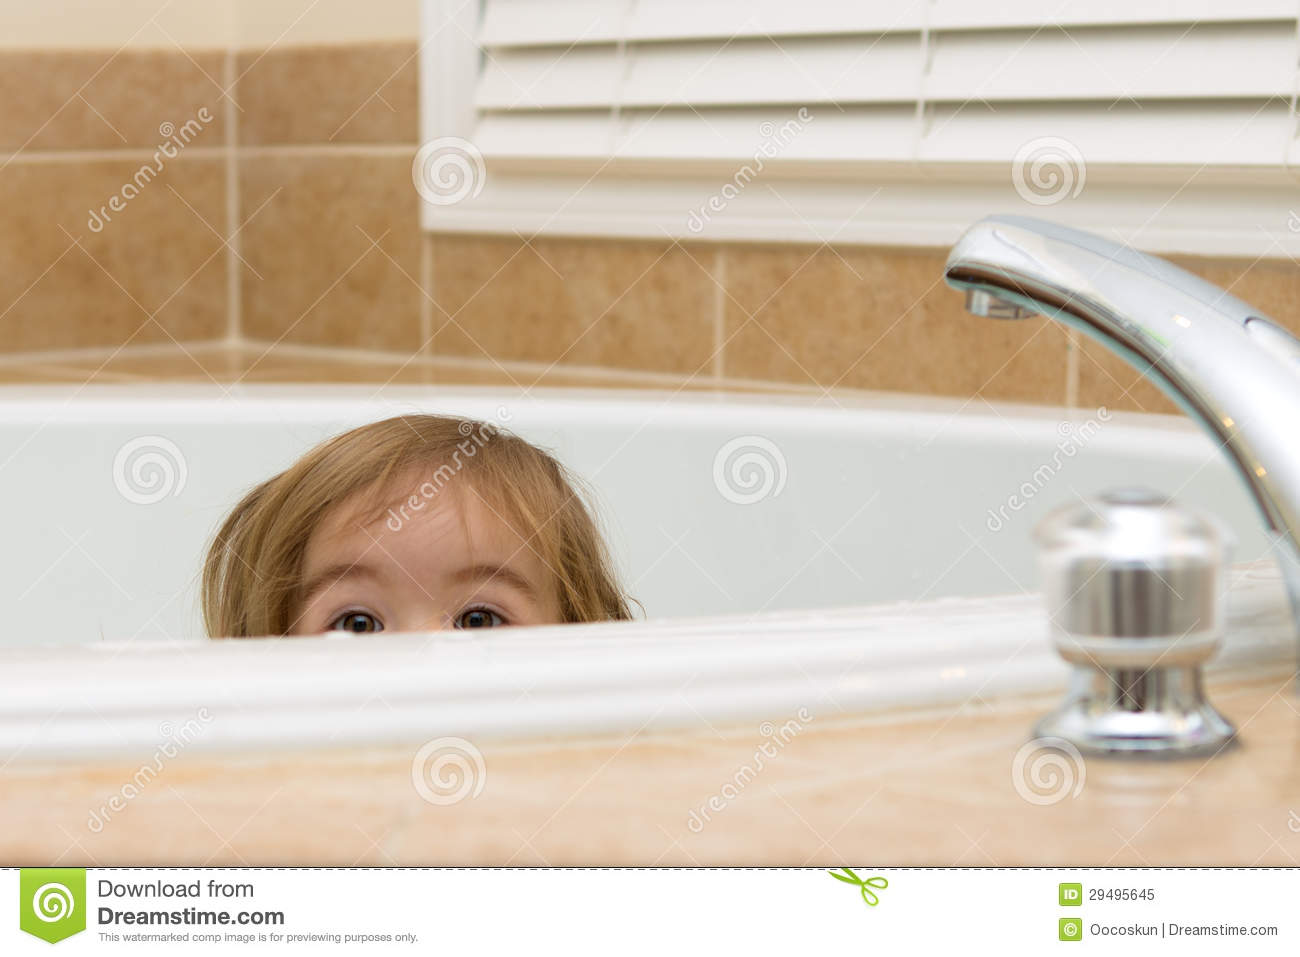 Curious Look In Bathtub Royalty Free Stock Photo Image